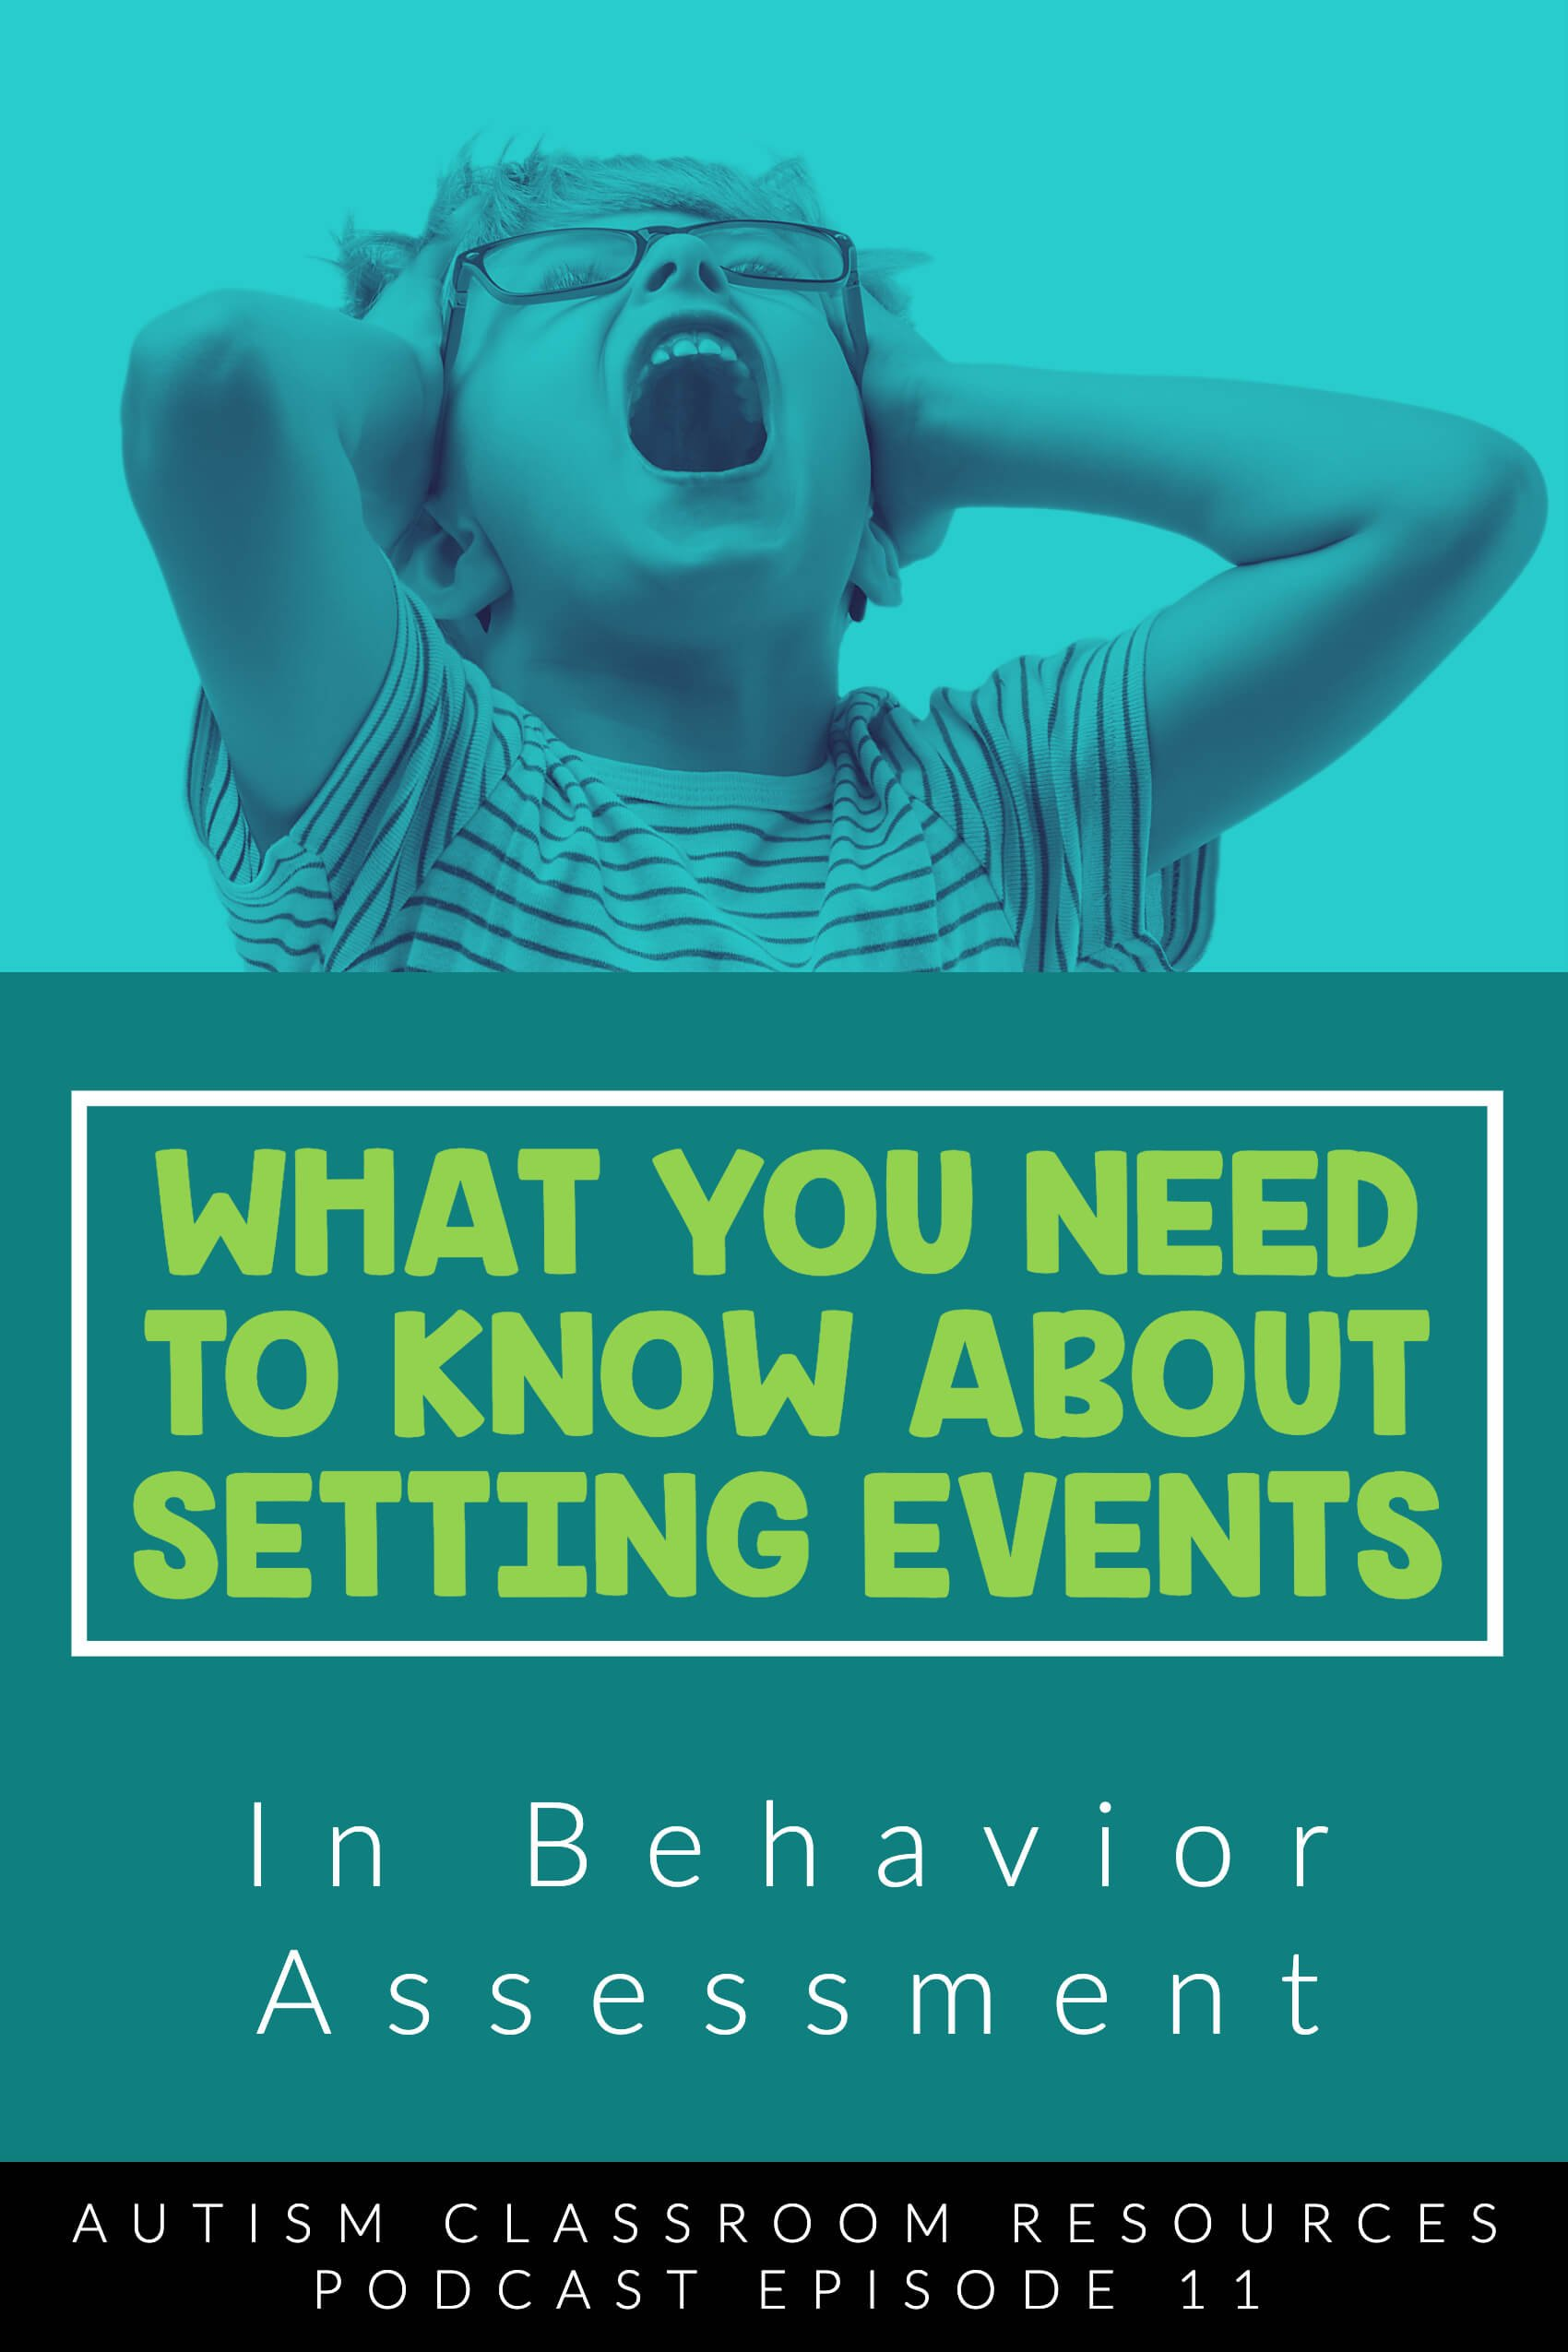 What you Need to Know About Setting Events. Autism Classroom Resources Podcast Episode 11